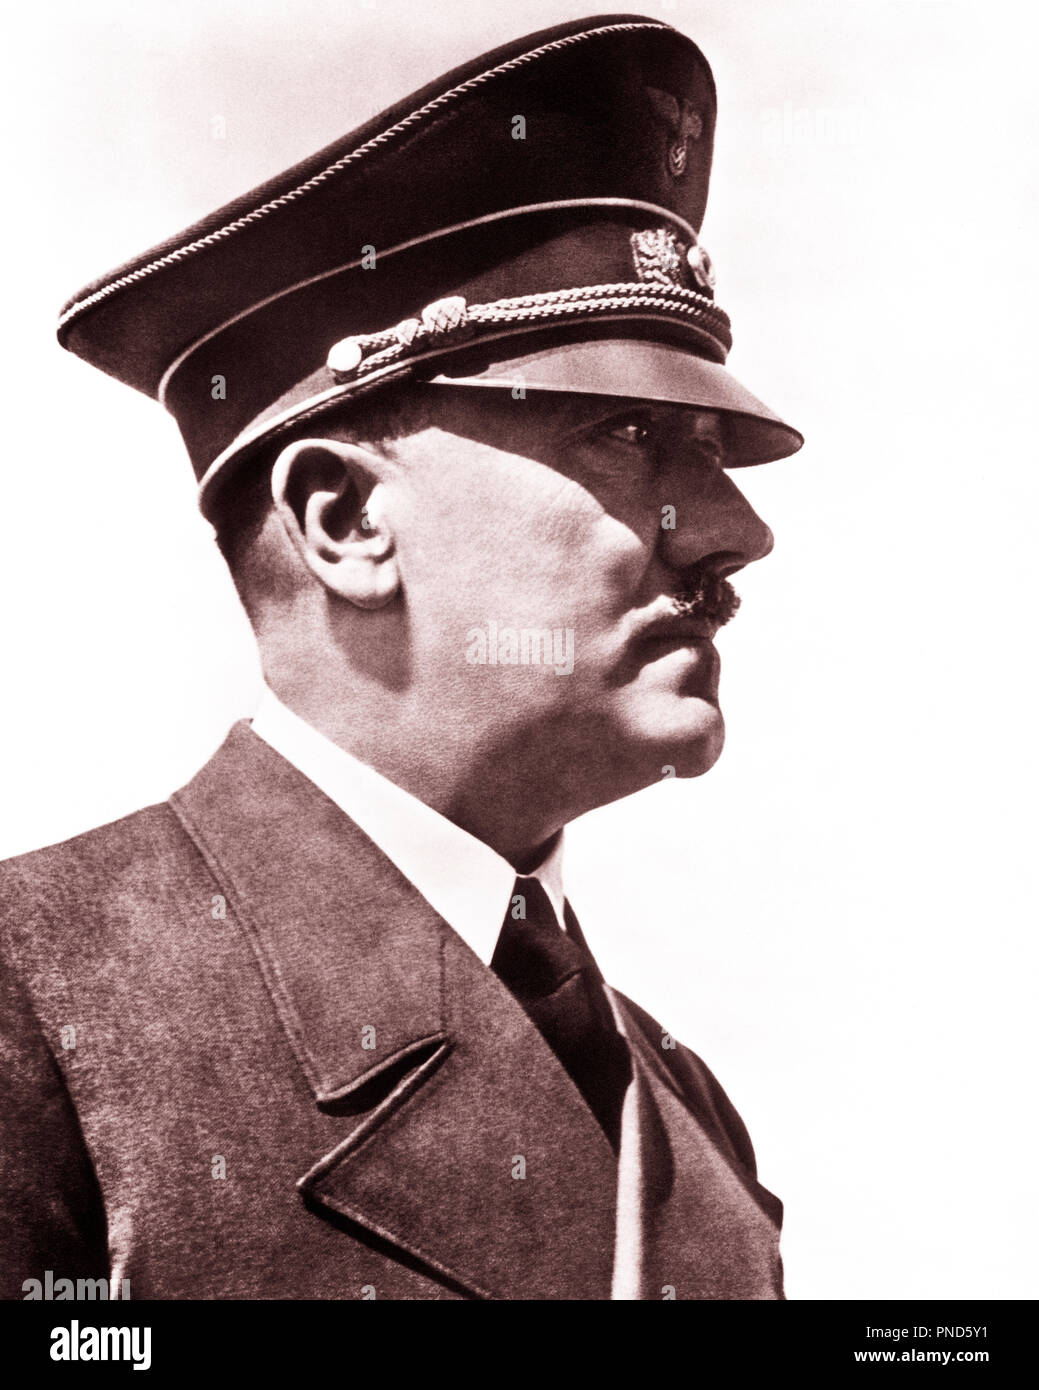 1930s 1940s PROFILE HEAD SHOULDERS ADOLF HITLER GERMAN NAZI PARTY LEADER AND DICTATOR - q72074 CPC001 HARS FAMOUS LEADERSHIP MONSTER WORLD WARS WORLD WAR WORLD WAR TWO DICTATOR AUTHORITY FACIAL HAIR POLITICS ADOLF ADOLPH HOLOCAUST INFAMOUS MURDERER NAZI FASCIST TYRANT FUHRER GENOCIDE MURDER NAZI PARTY NEUROTIC PERSONALITIES PSYCHOPATH SUICIDE SUPREMACIST BLACK AND WHITE CAUCASIAN ETHNICITY FAMOUS PERSON OLD FASHIONED - Stock Image